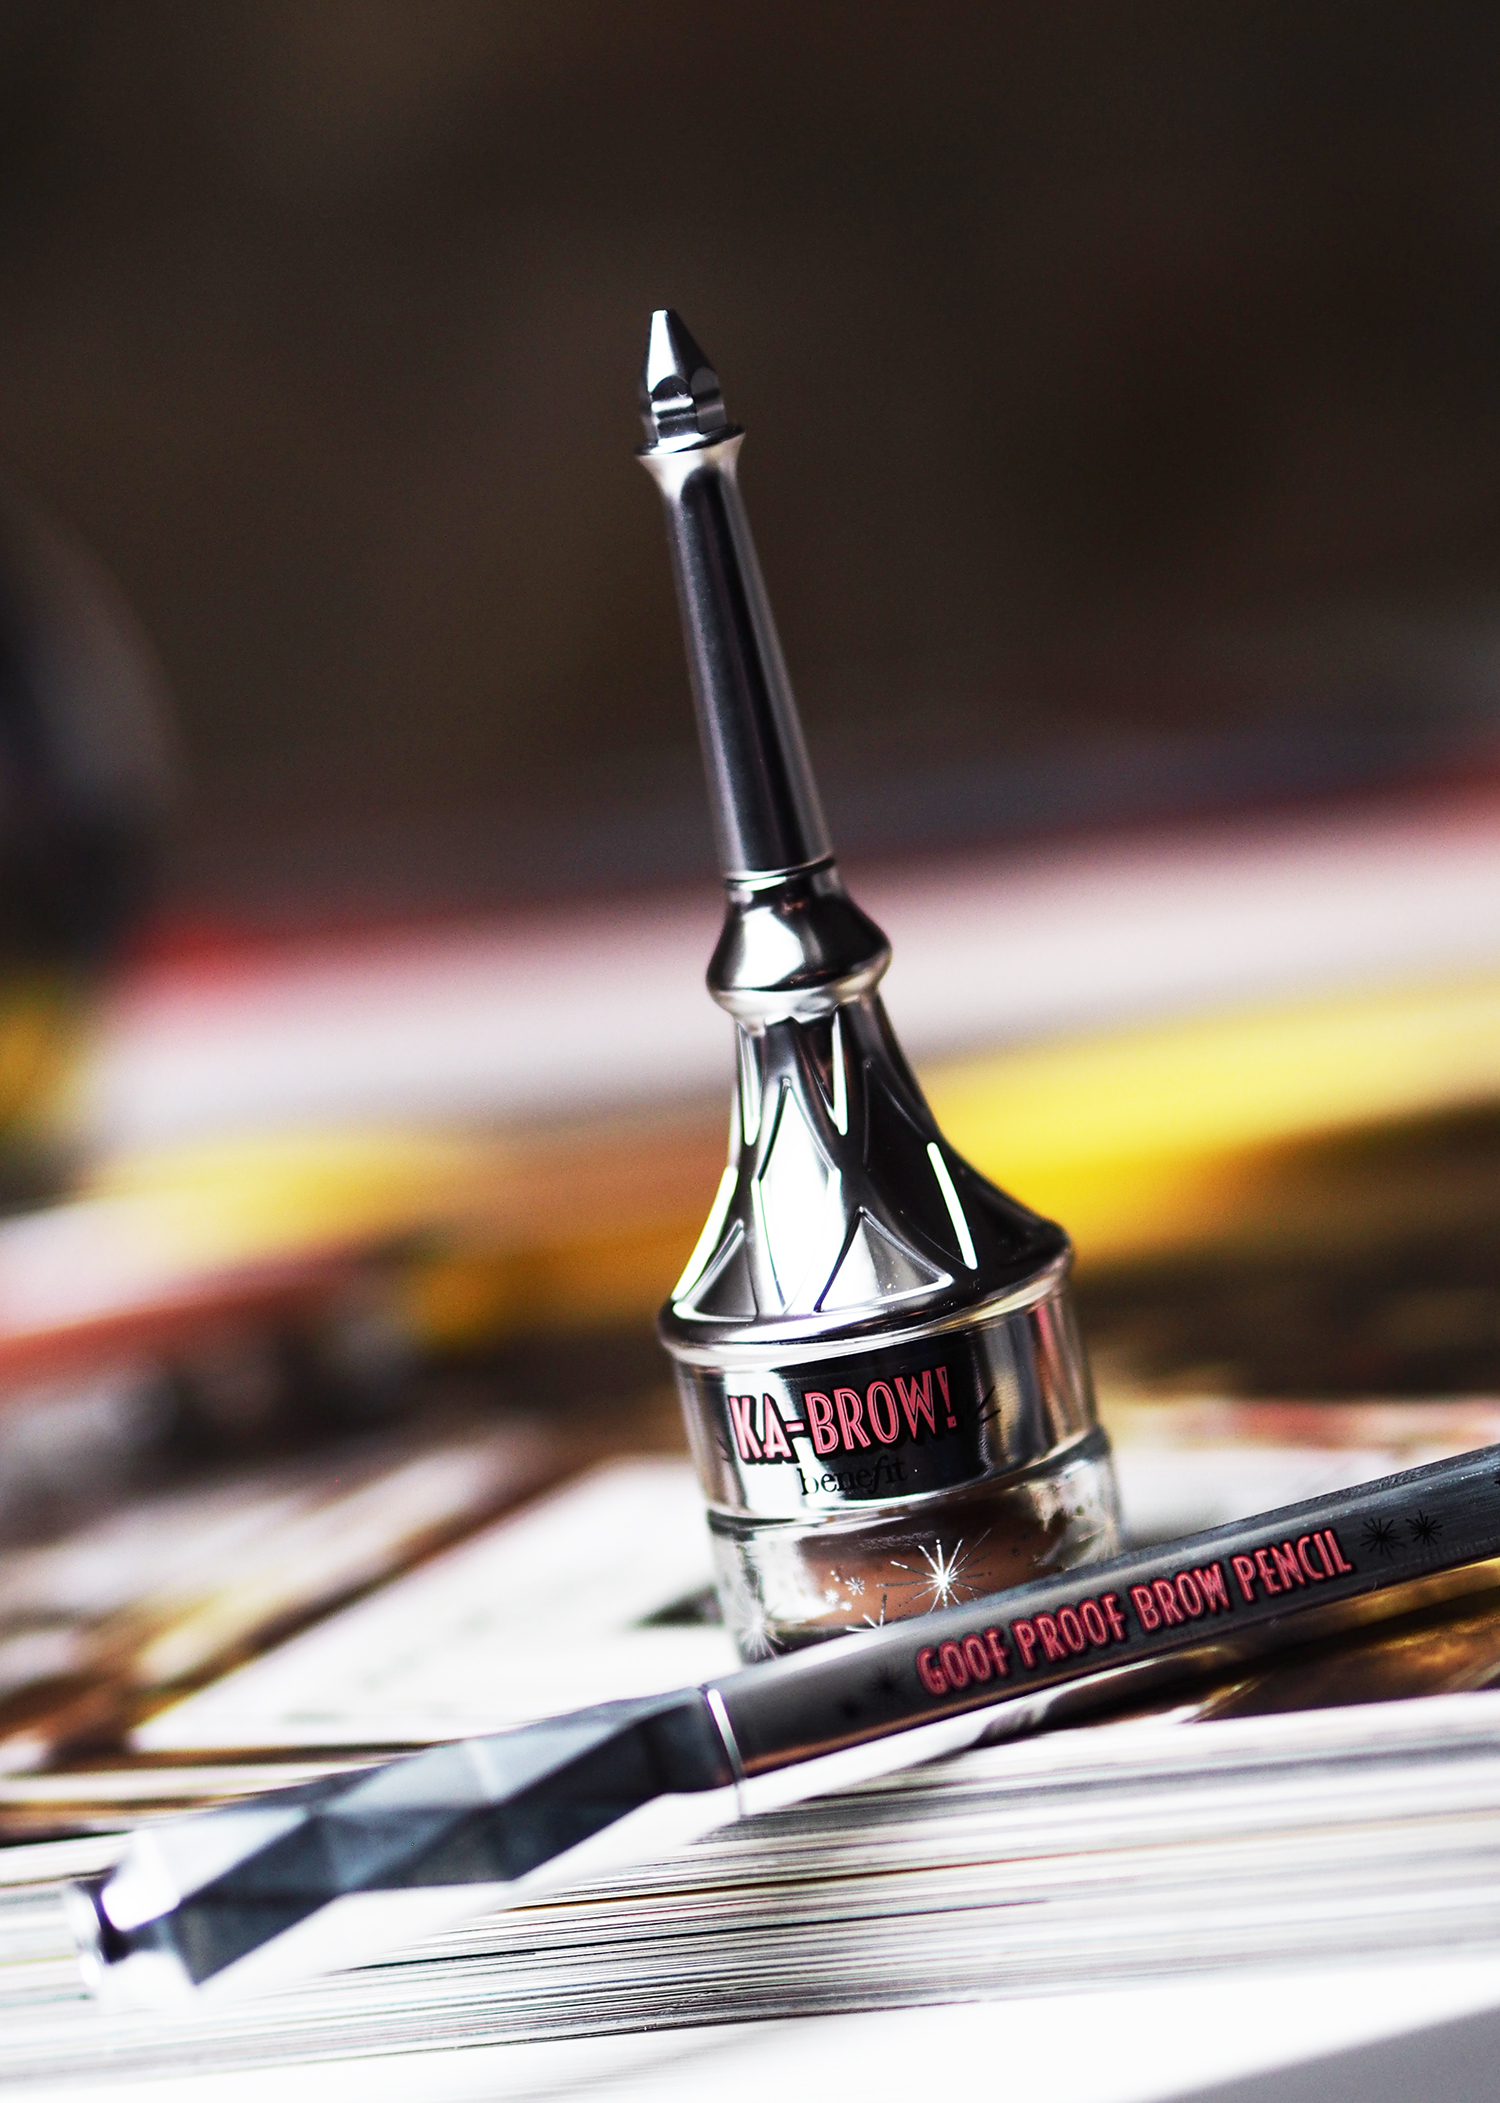 benefit-cosmetics-goof-proof-brow-pencil-review-zoe-newlove-beauty-blogger